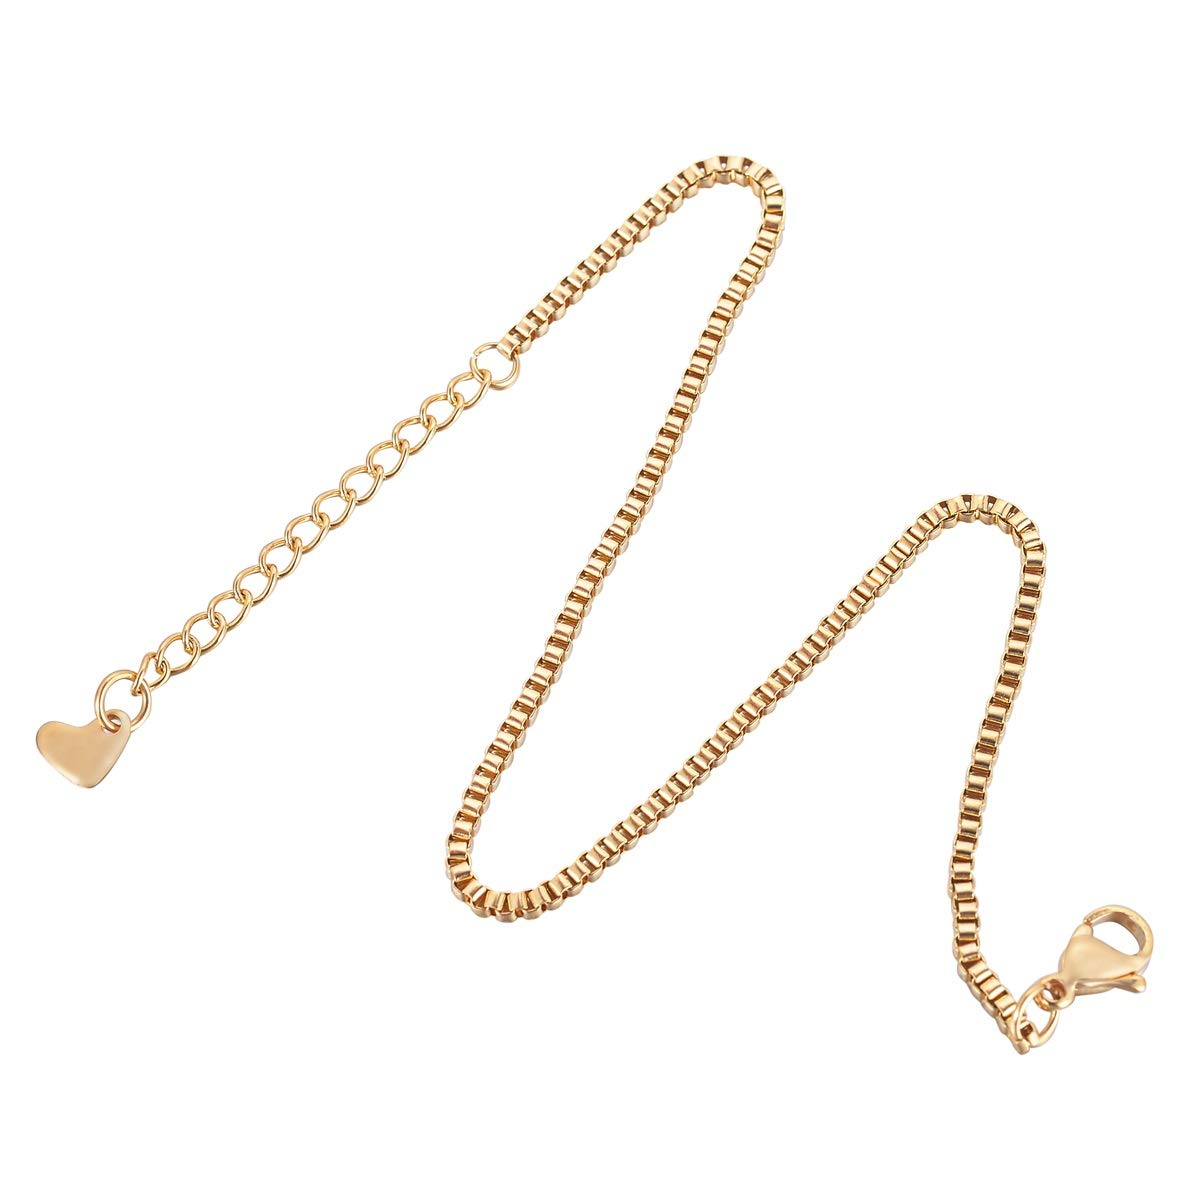 HooAMI Stainless Steel Anklet Box Rolo Chain Ankle Bracelet for Women & Girls,Gold Plated